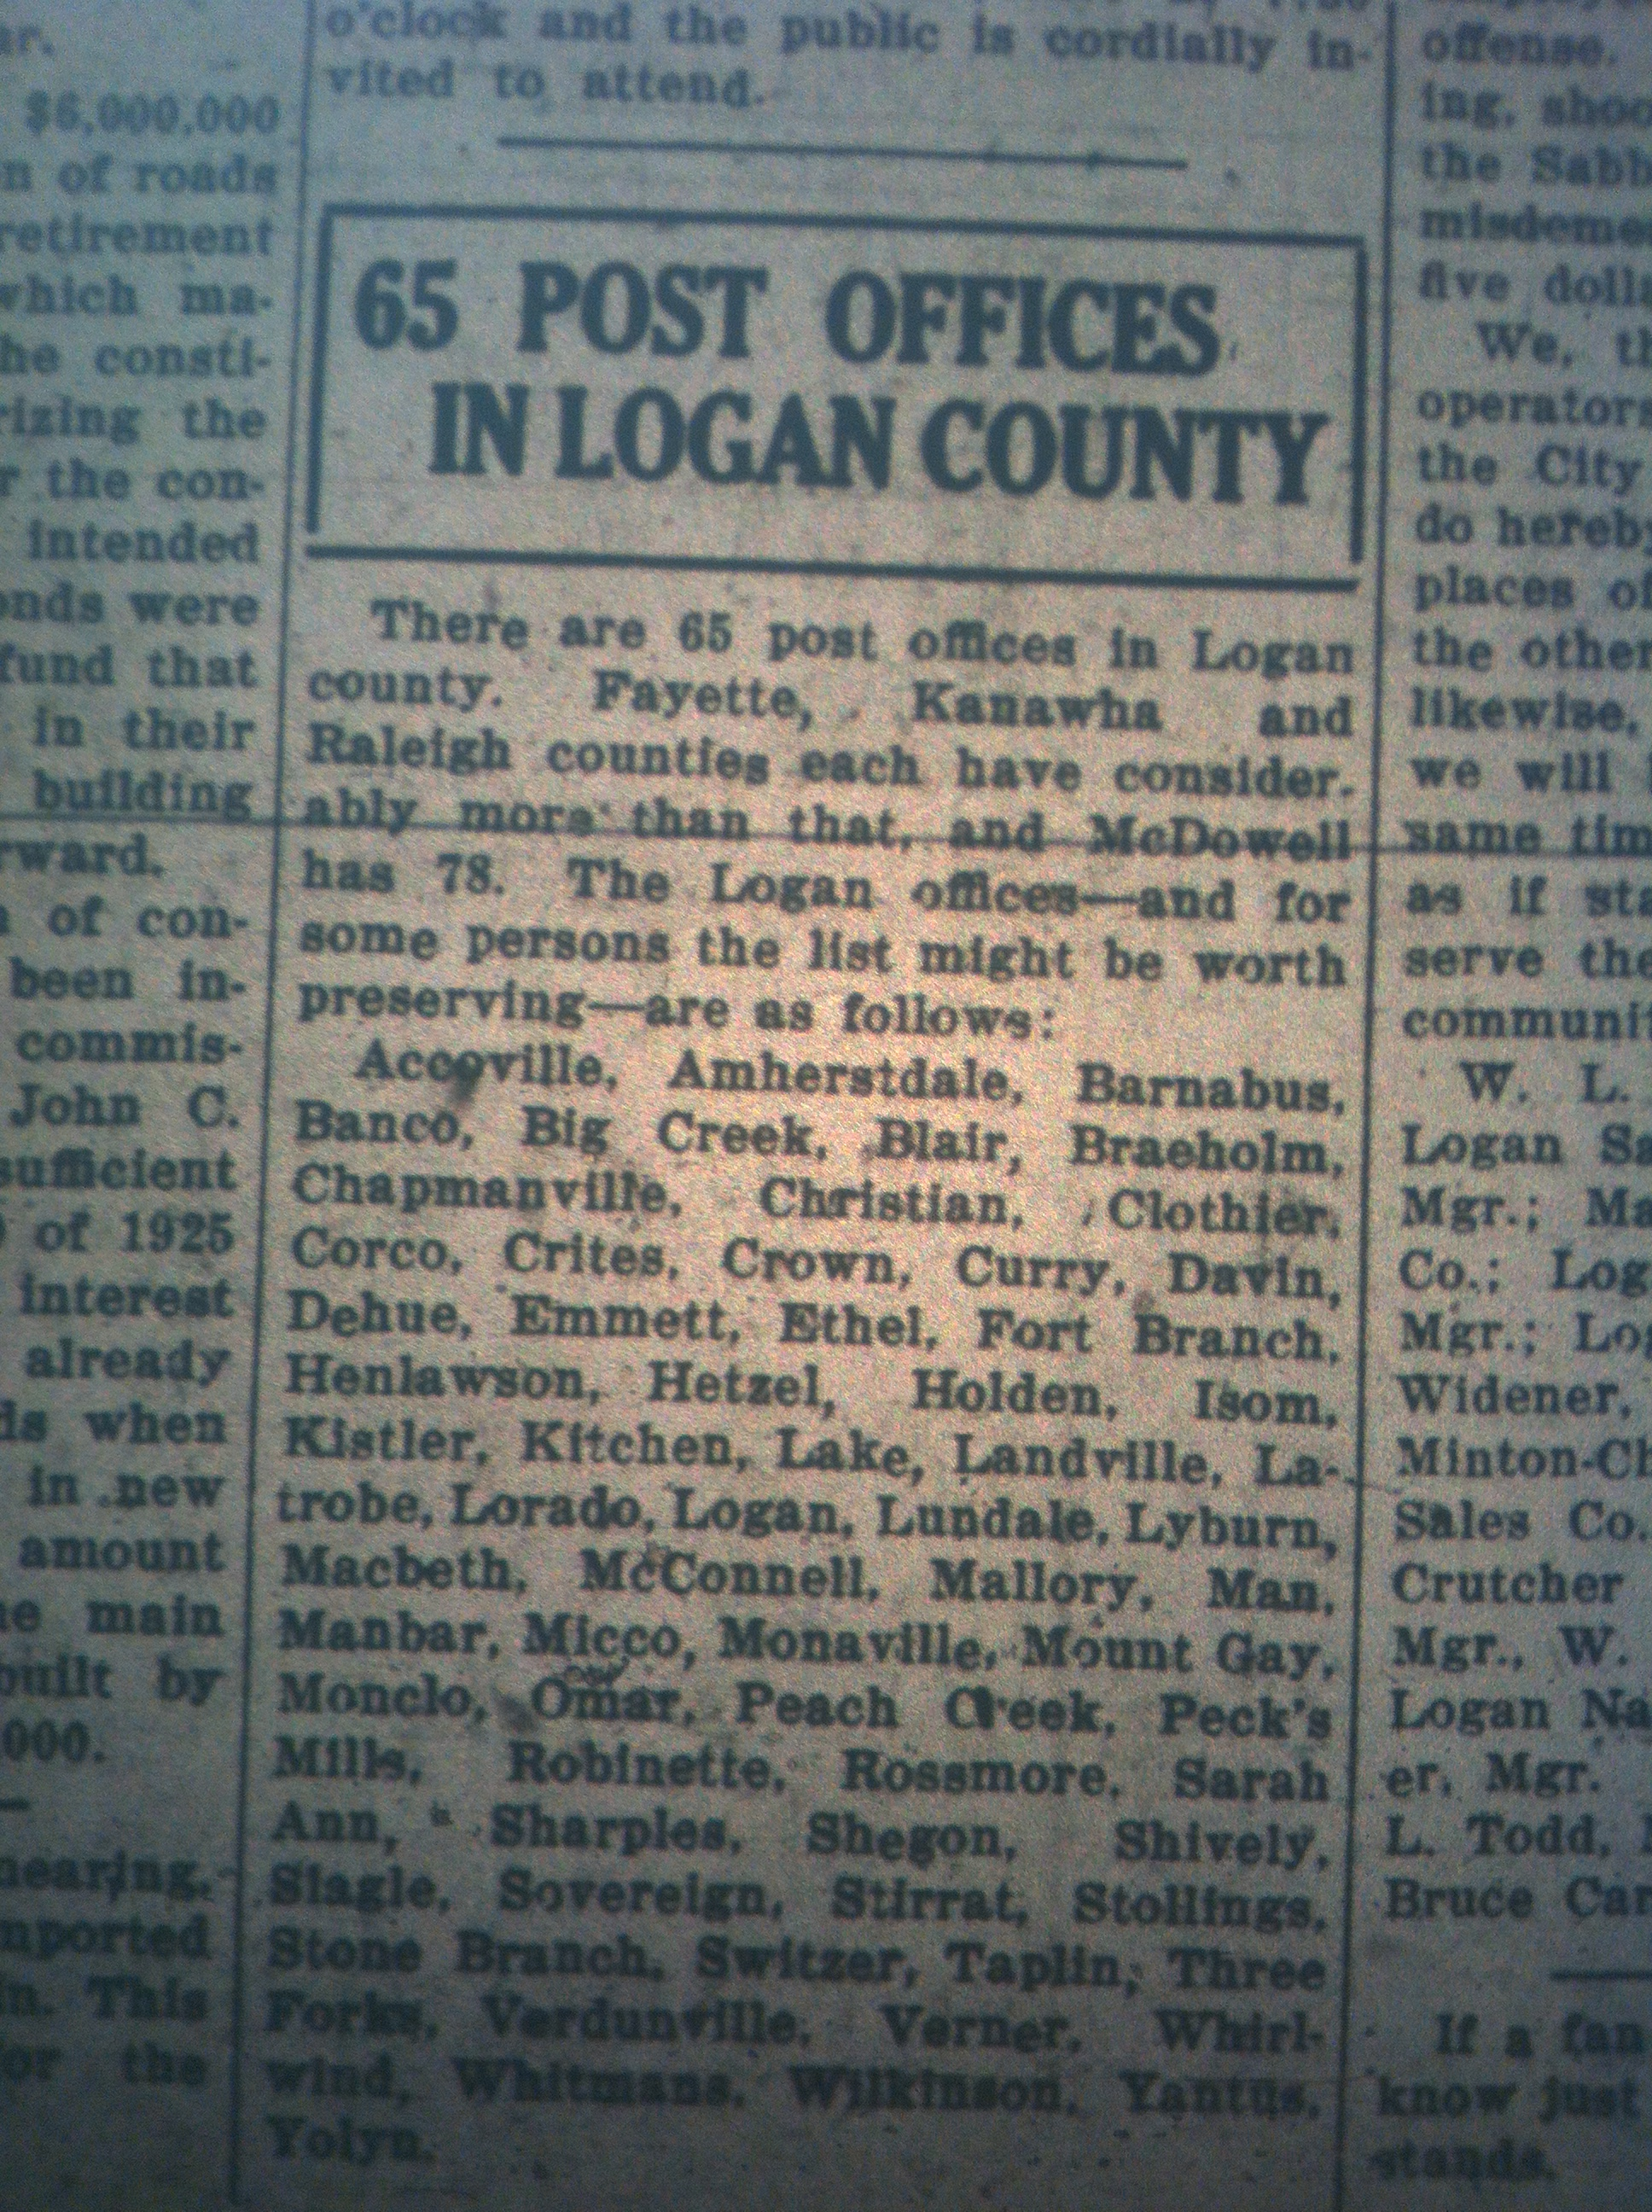 65 Post Offices in Logan County LB 09.24.1926.JPG